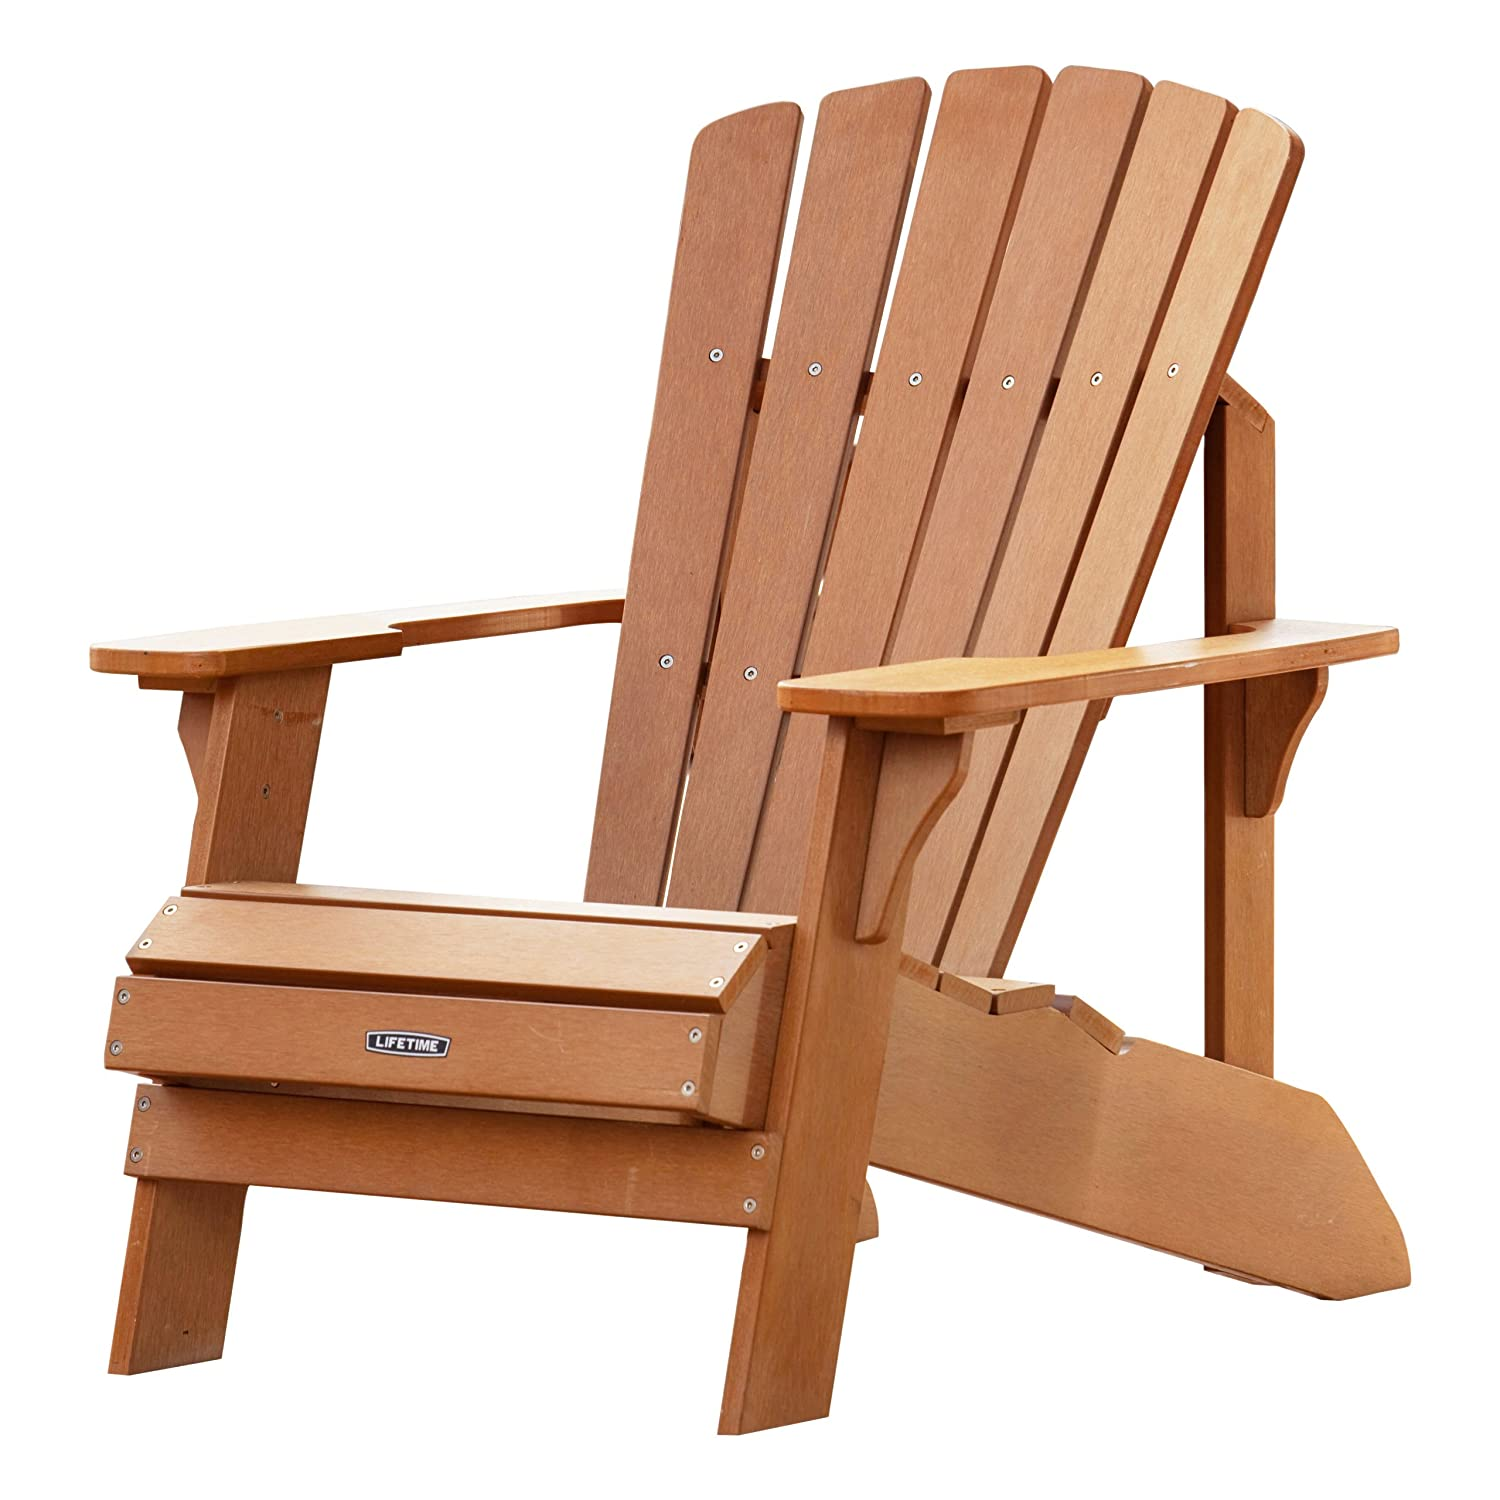 Heavy Duty Adirondack Chairs For Large People  For Big